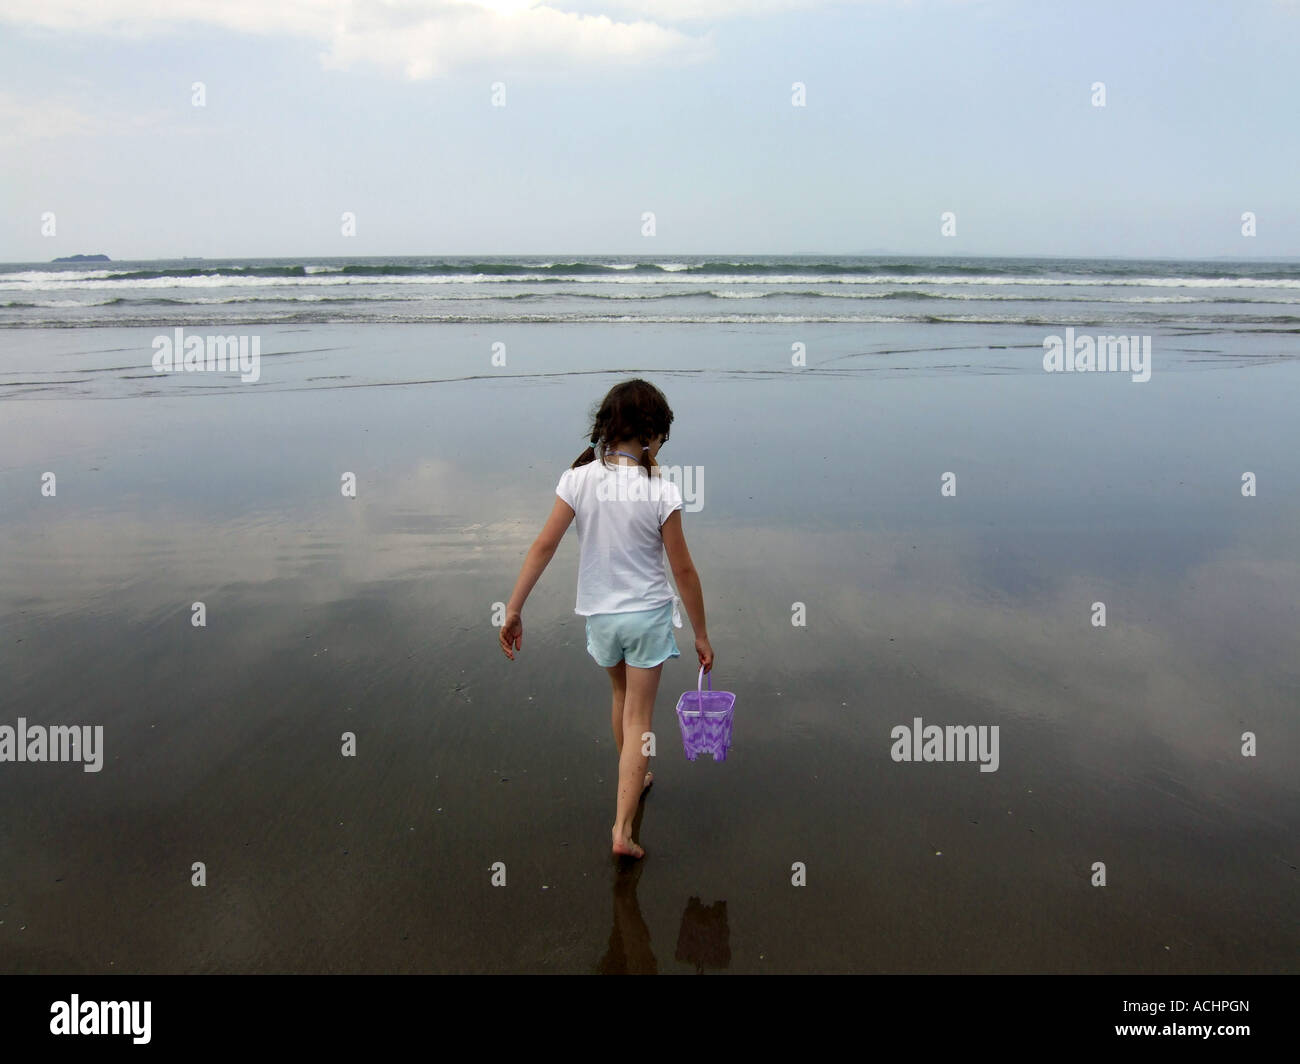 Fille qui marche sur la mer portant un seau, UK Photo Stock